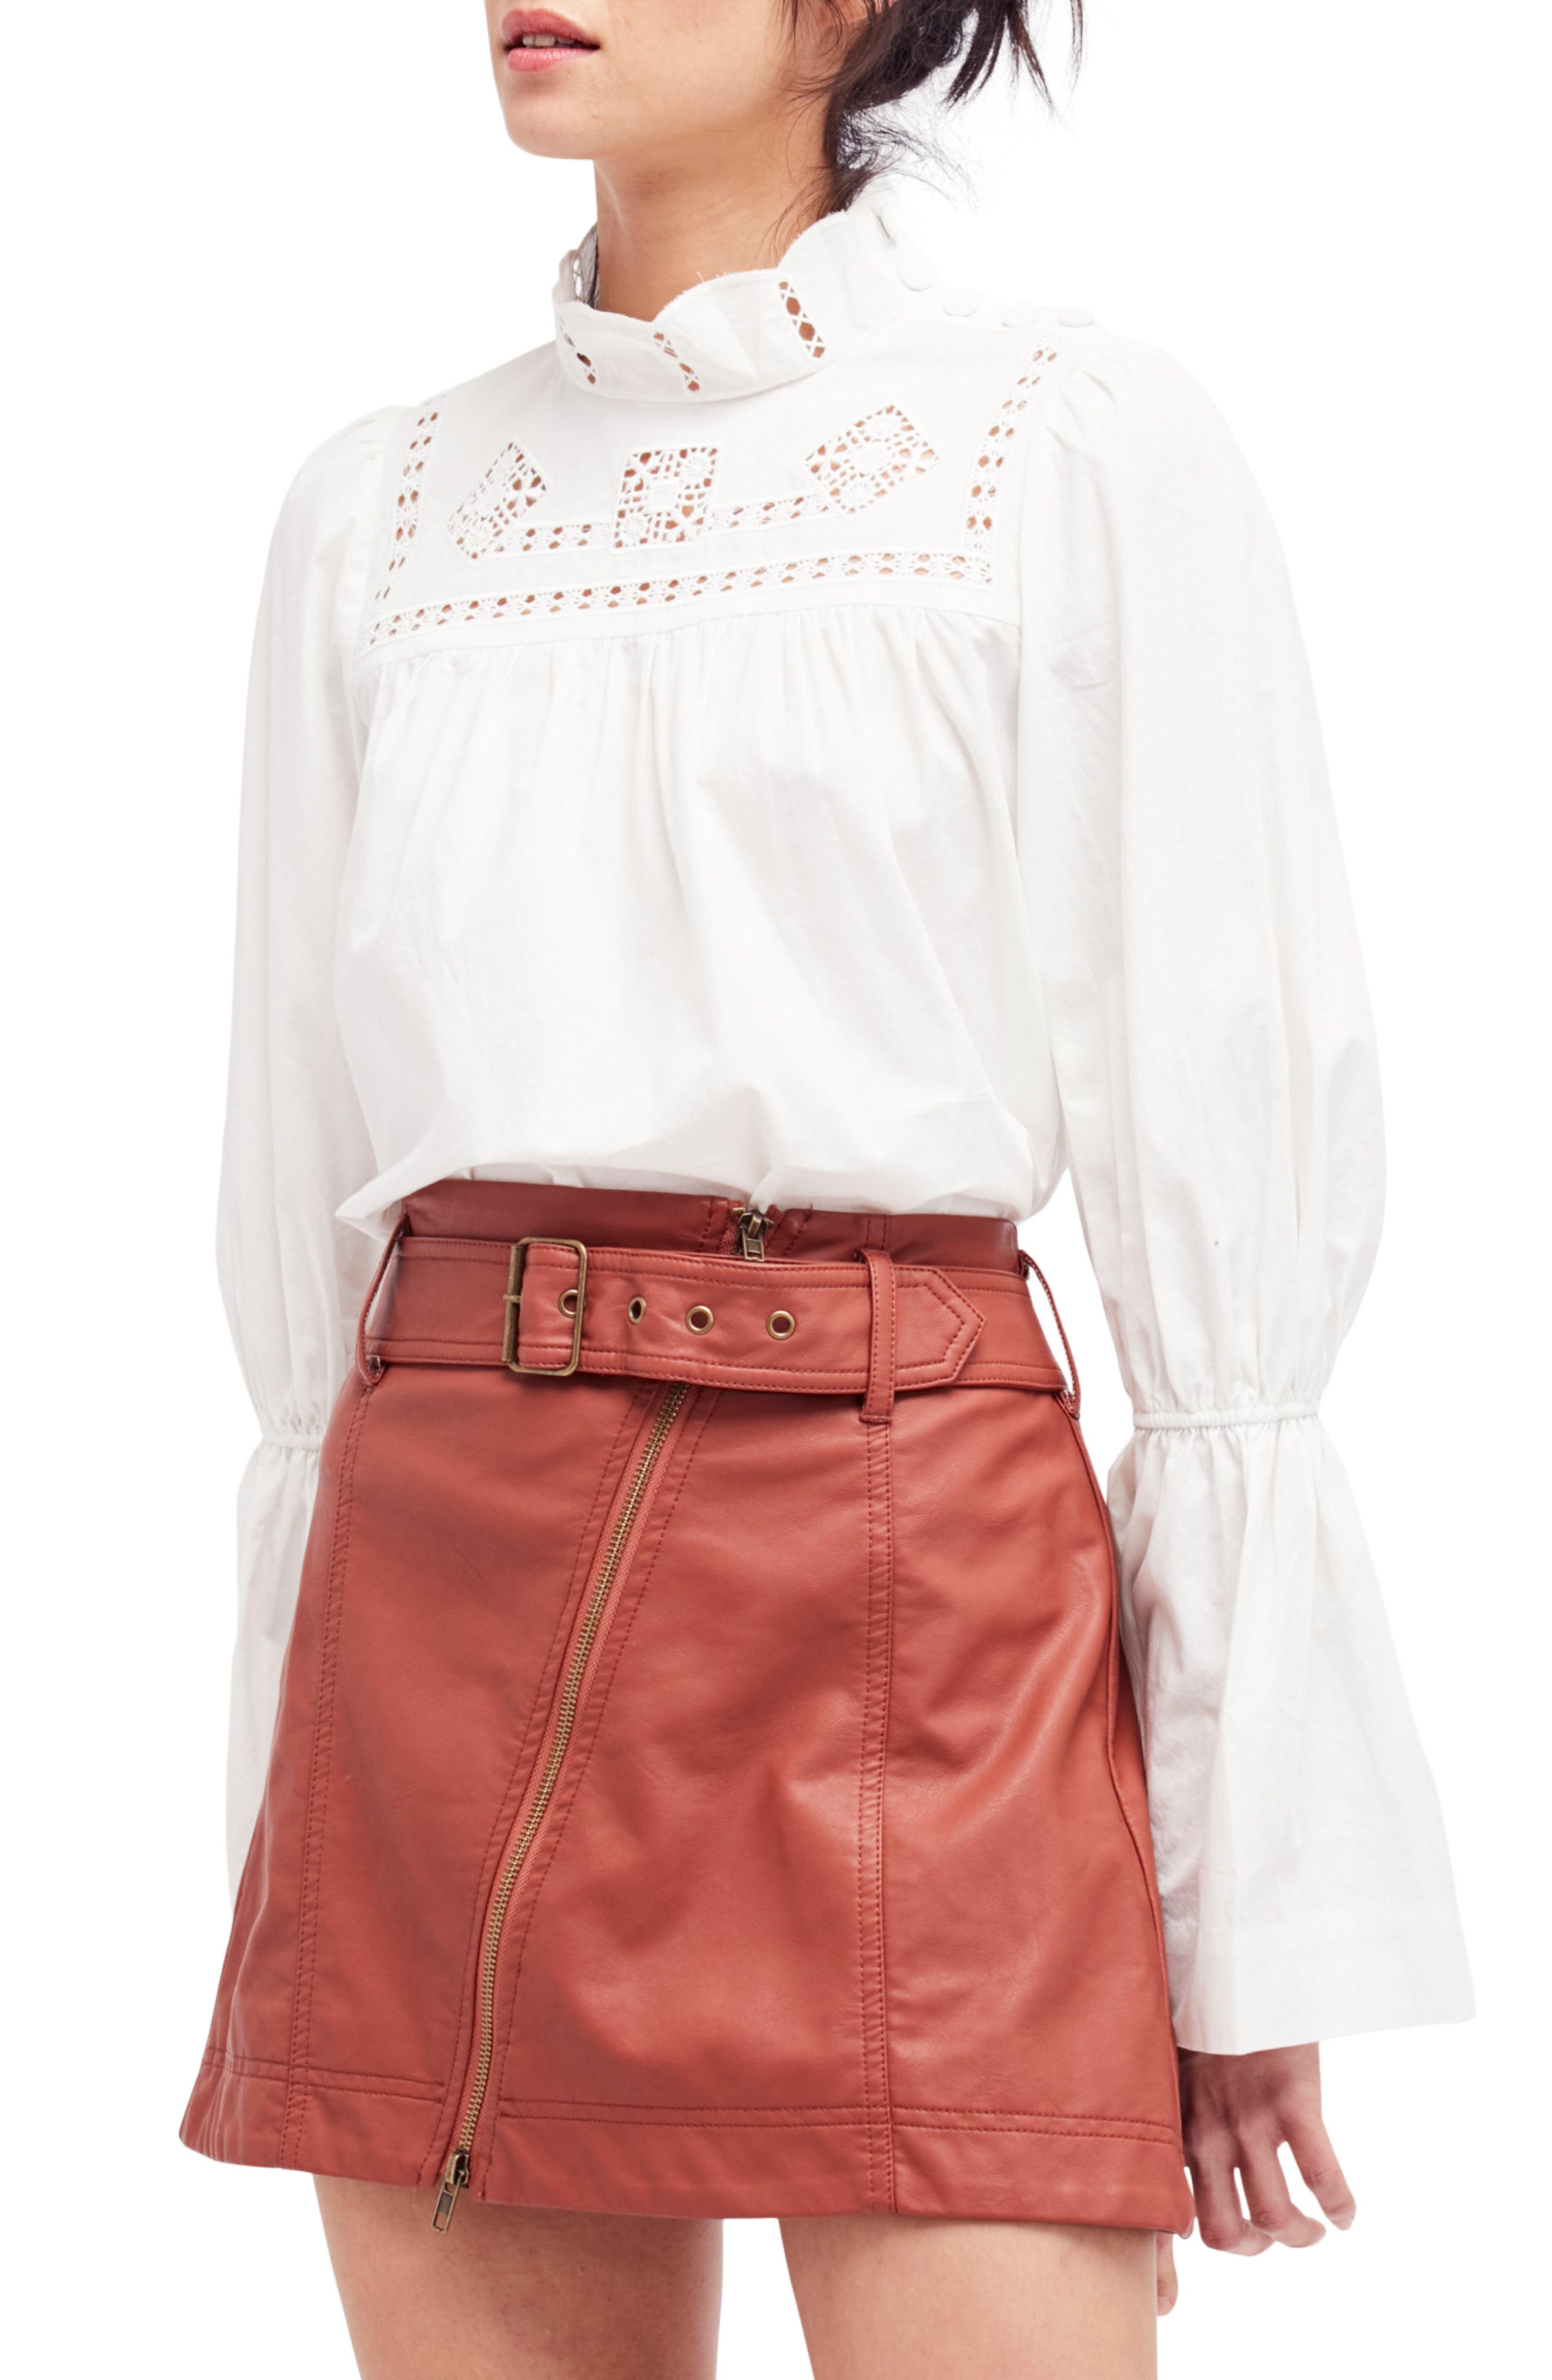 FREE PEOPLE Another Eternity Blouse